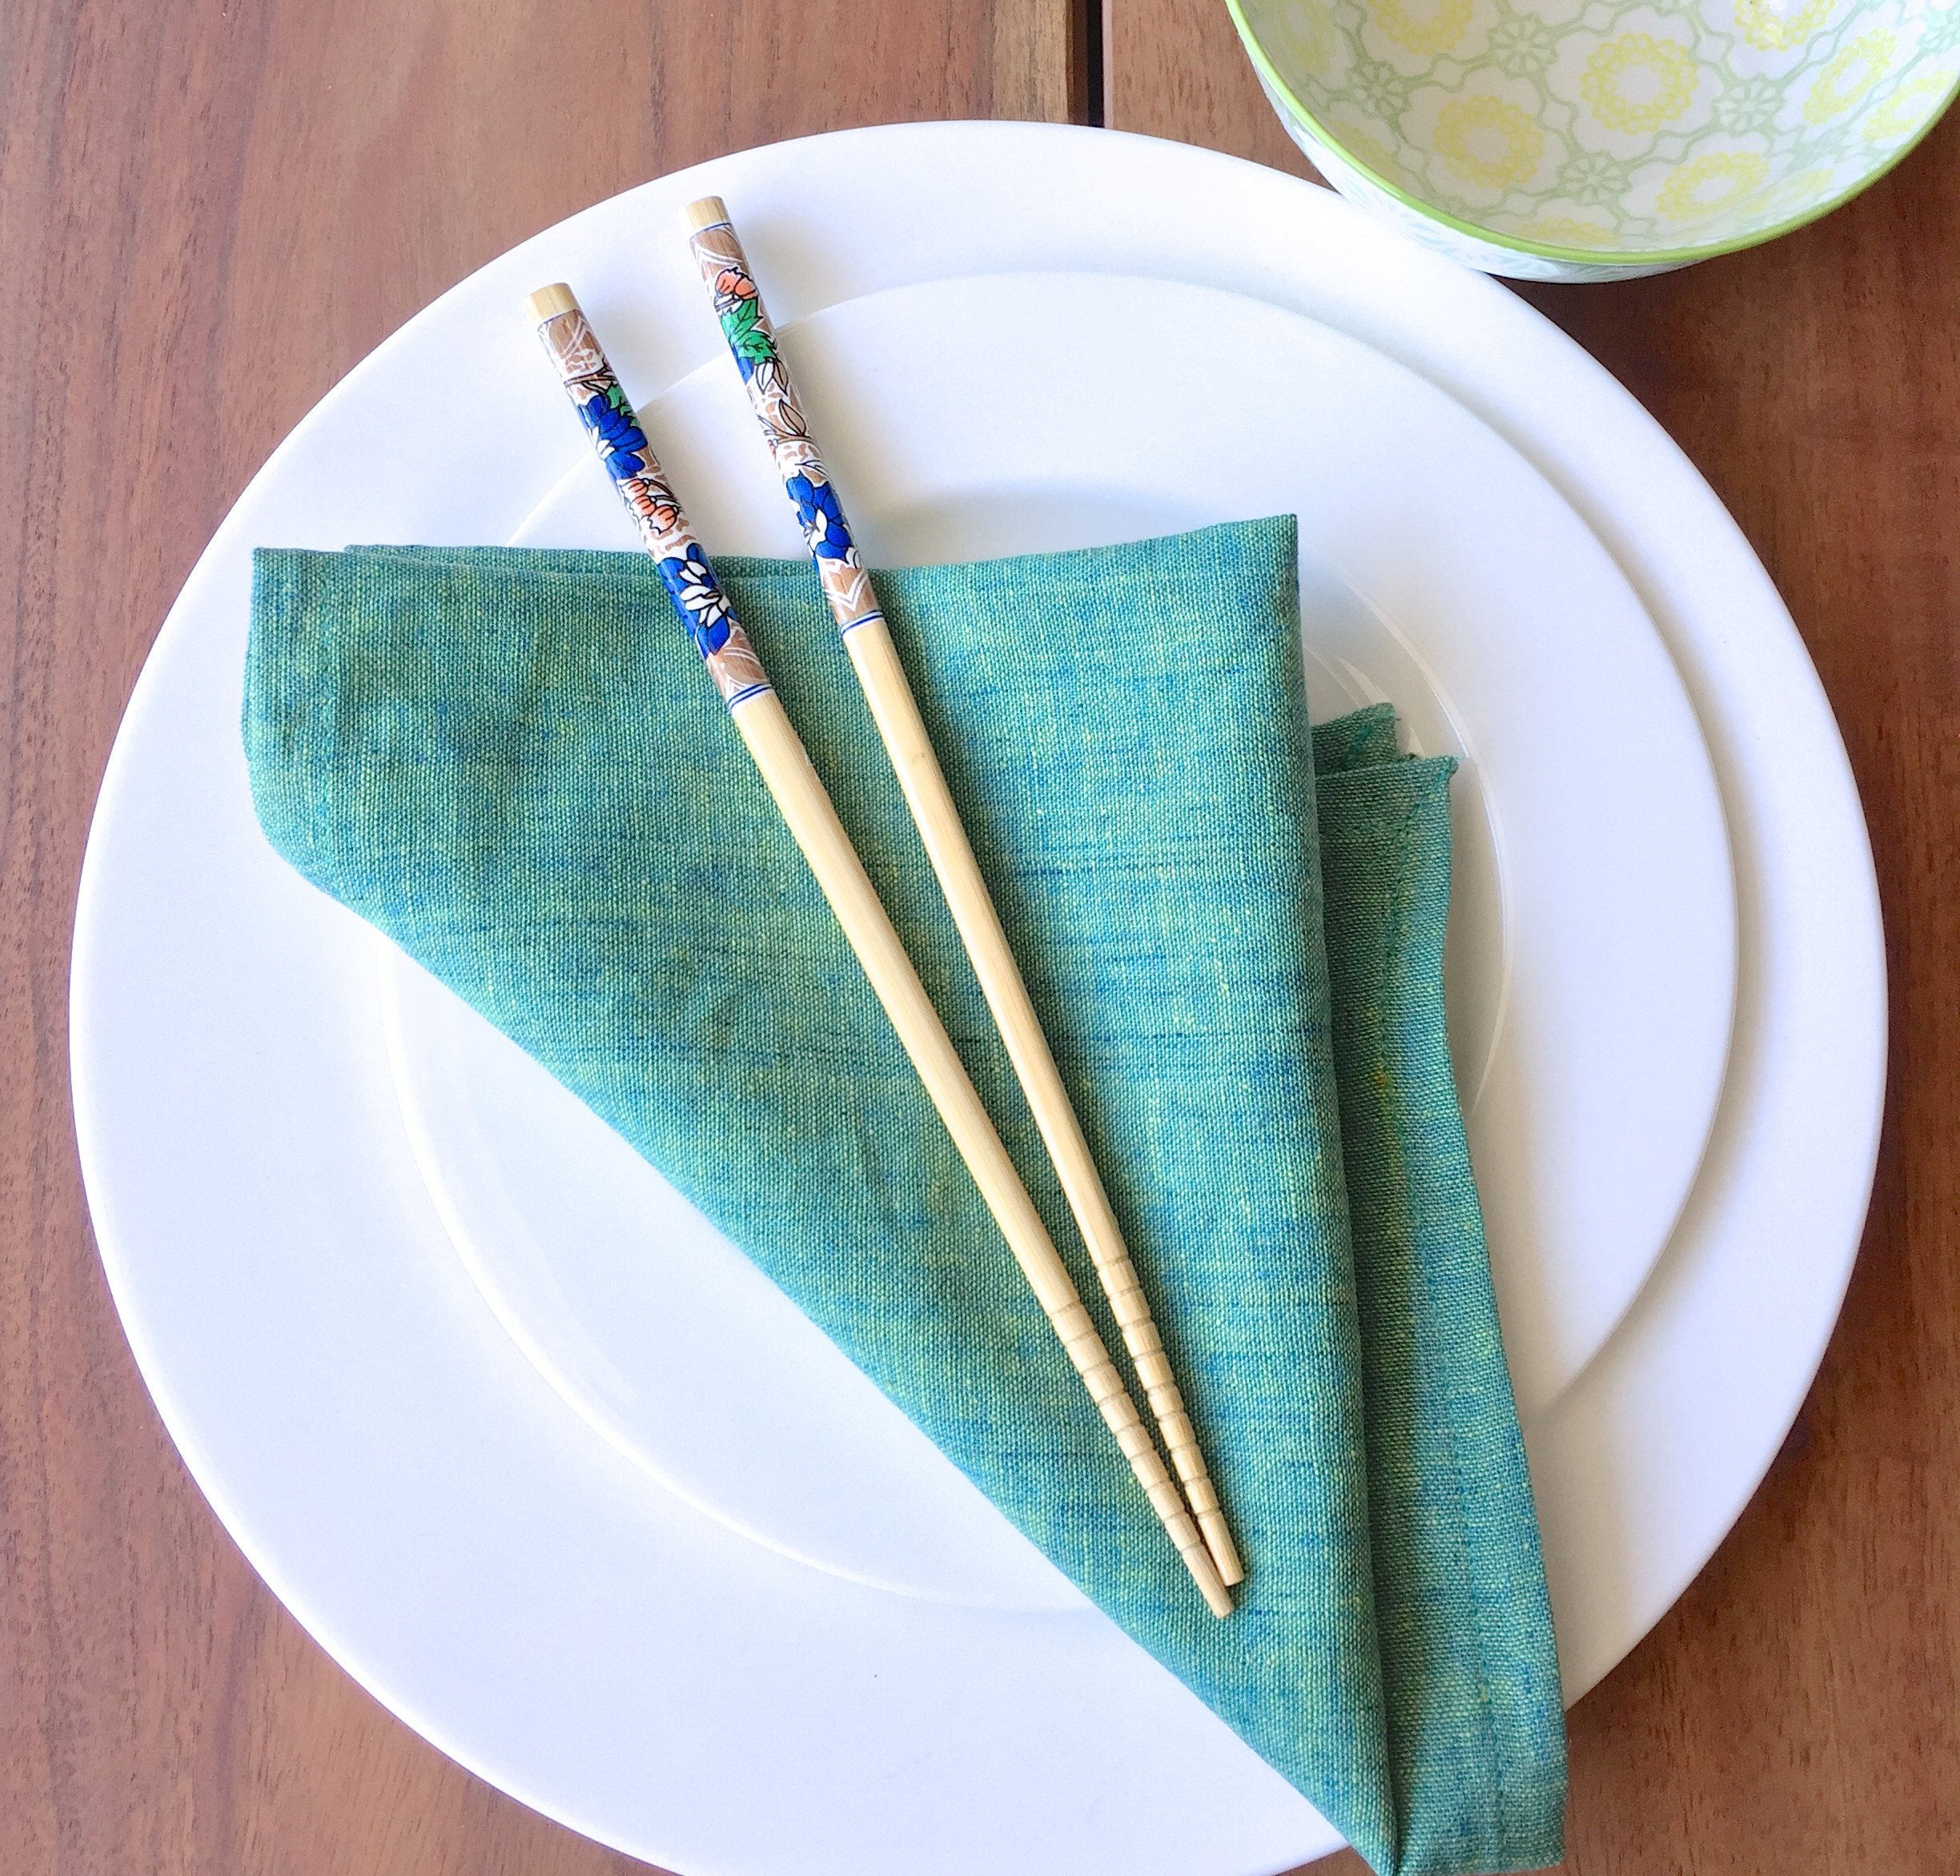 Spring Green Napkin by Shivam Creations